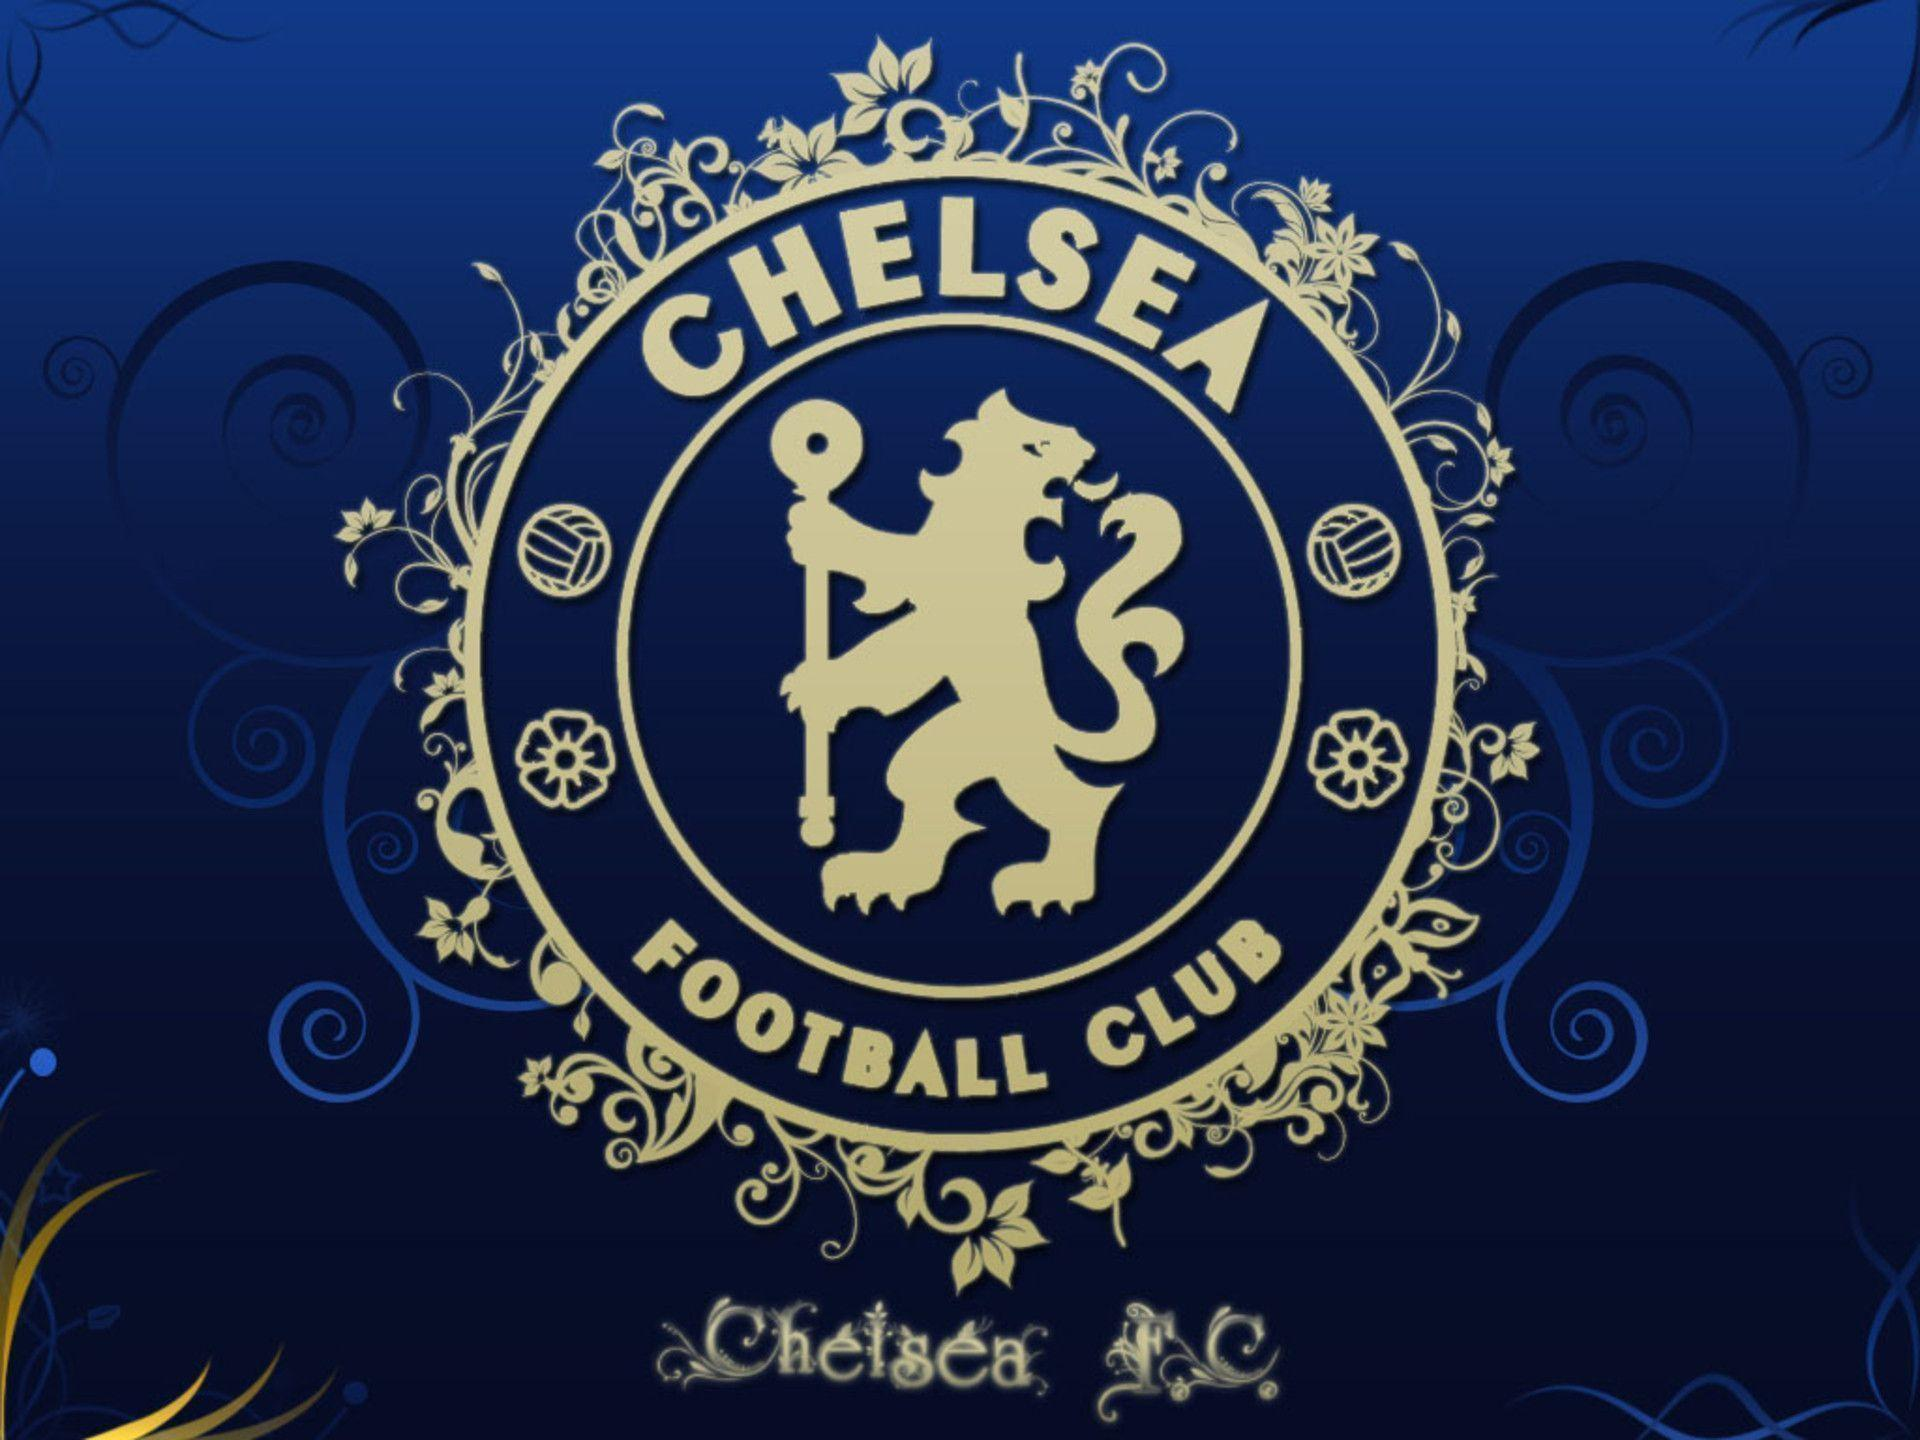 Why chelsea are going downwards as a football club